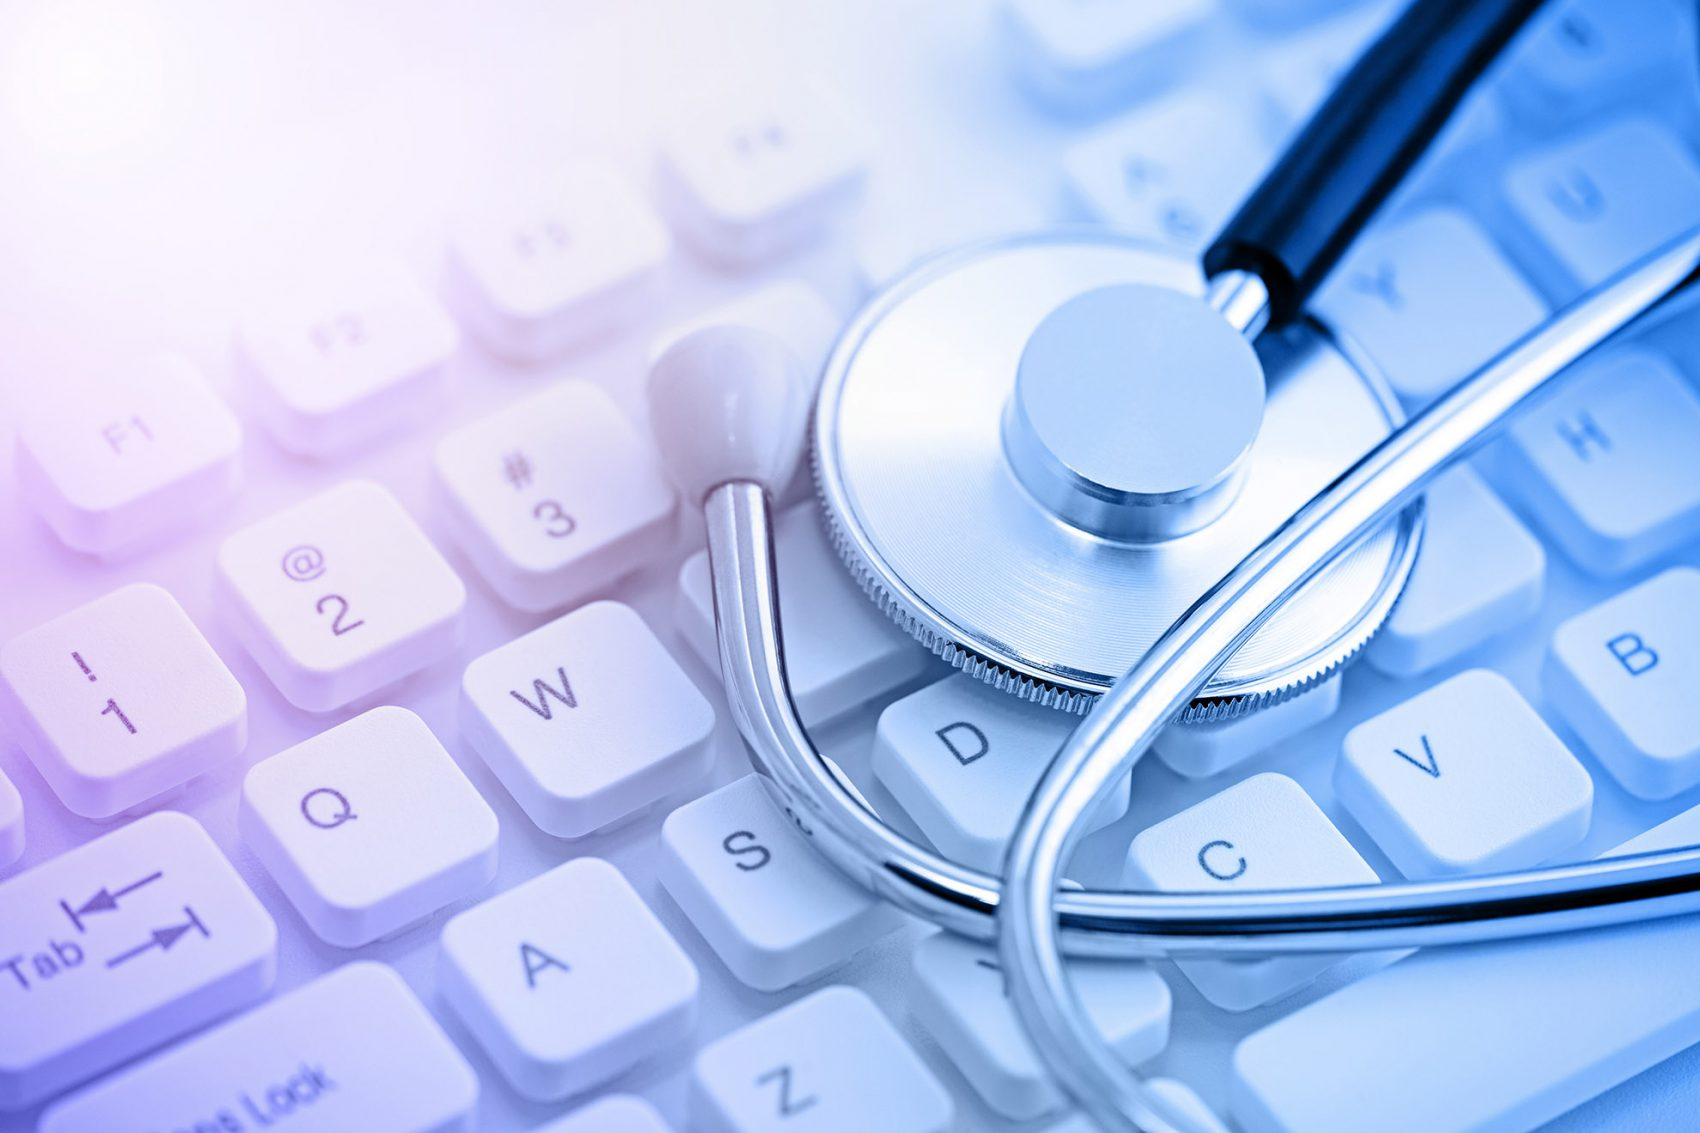 stethoscope on keyboard-healthcare-orginal